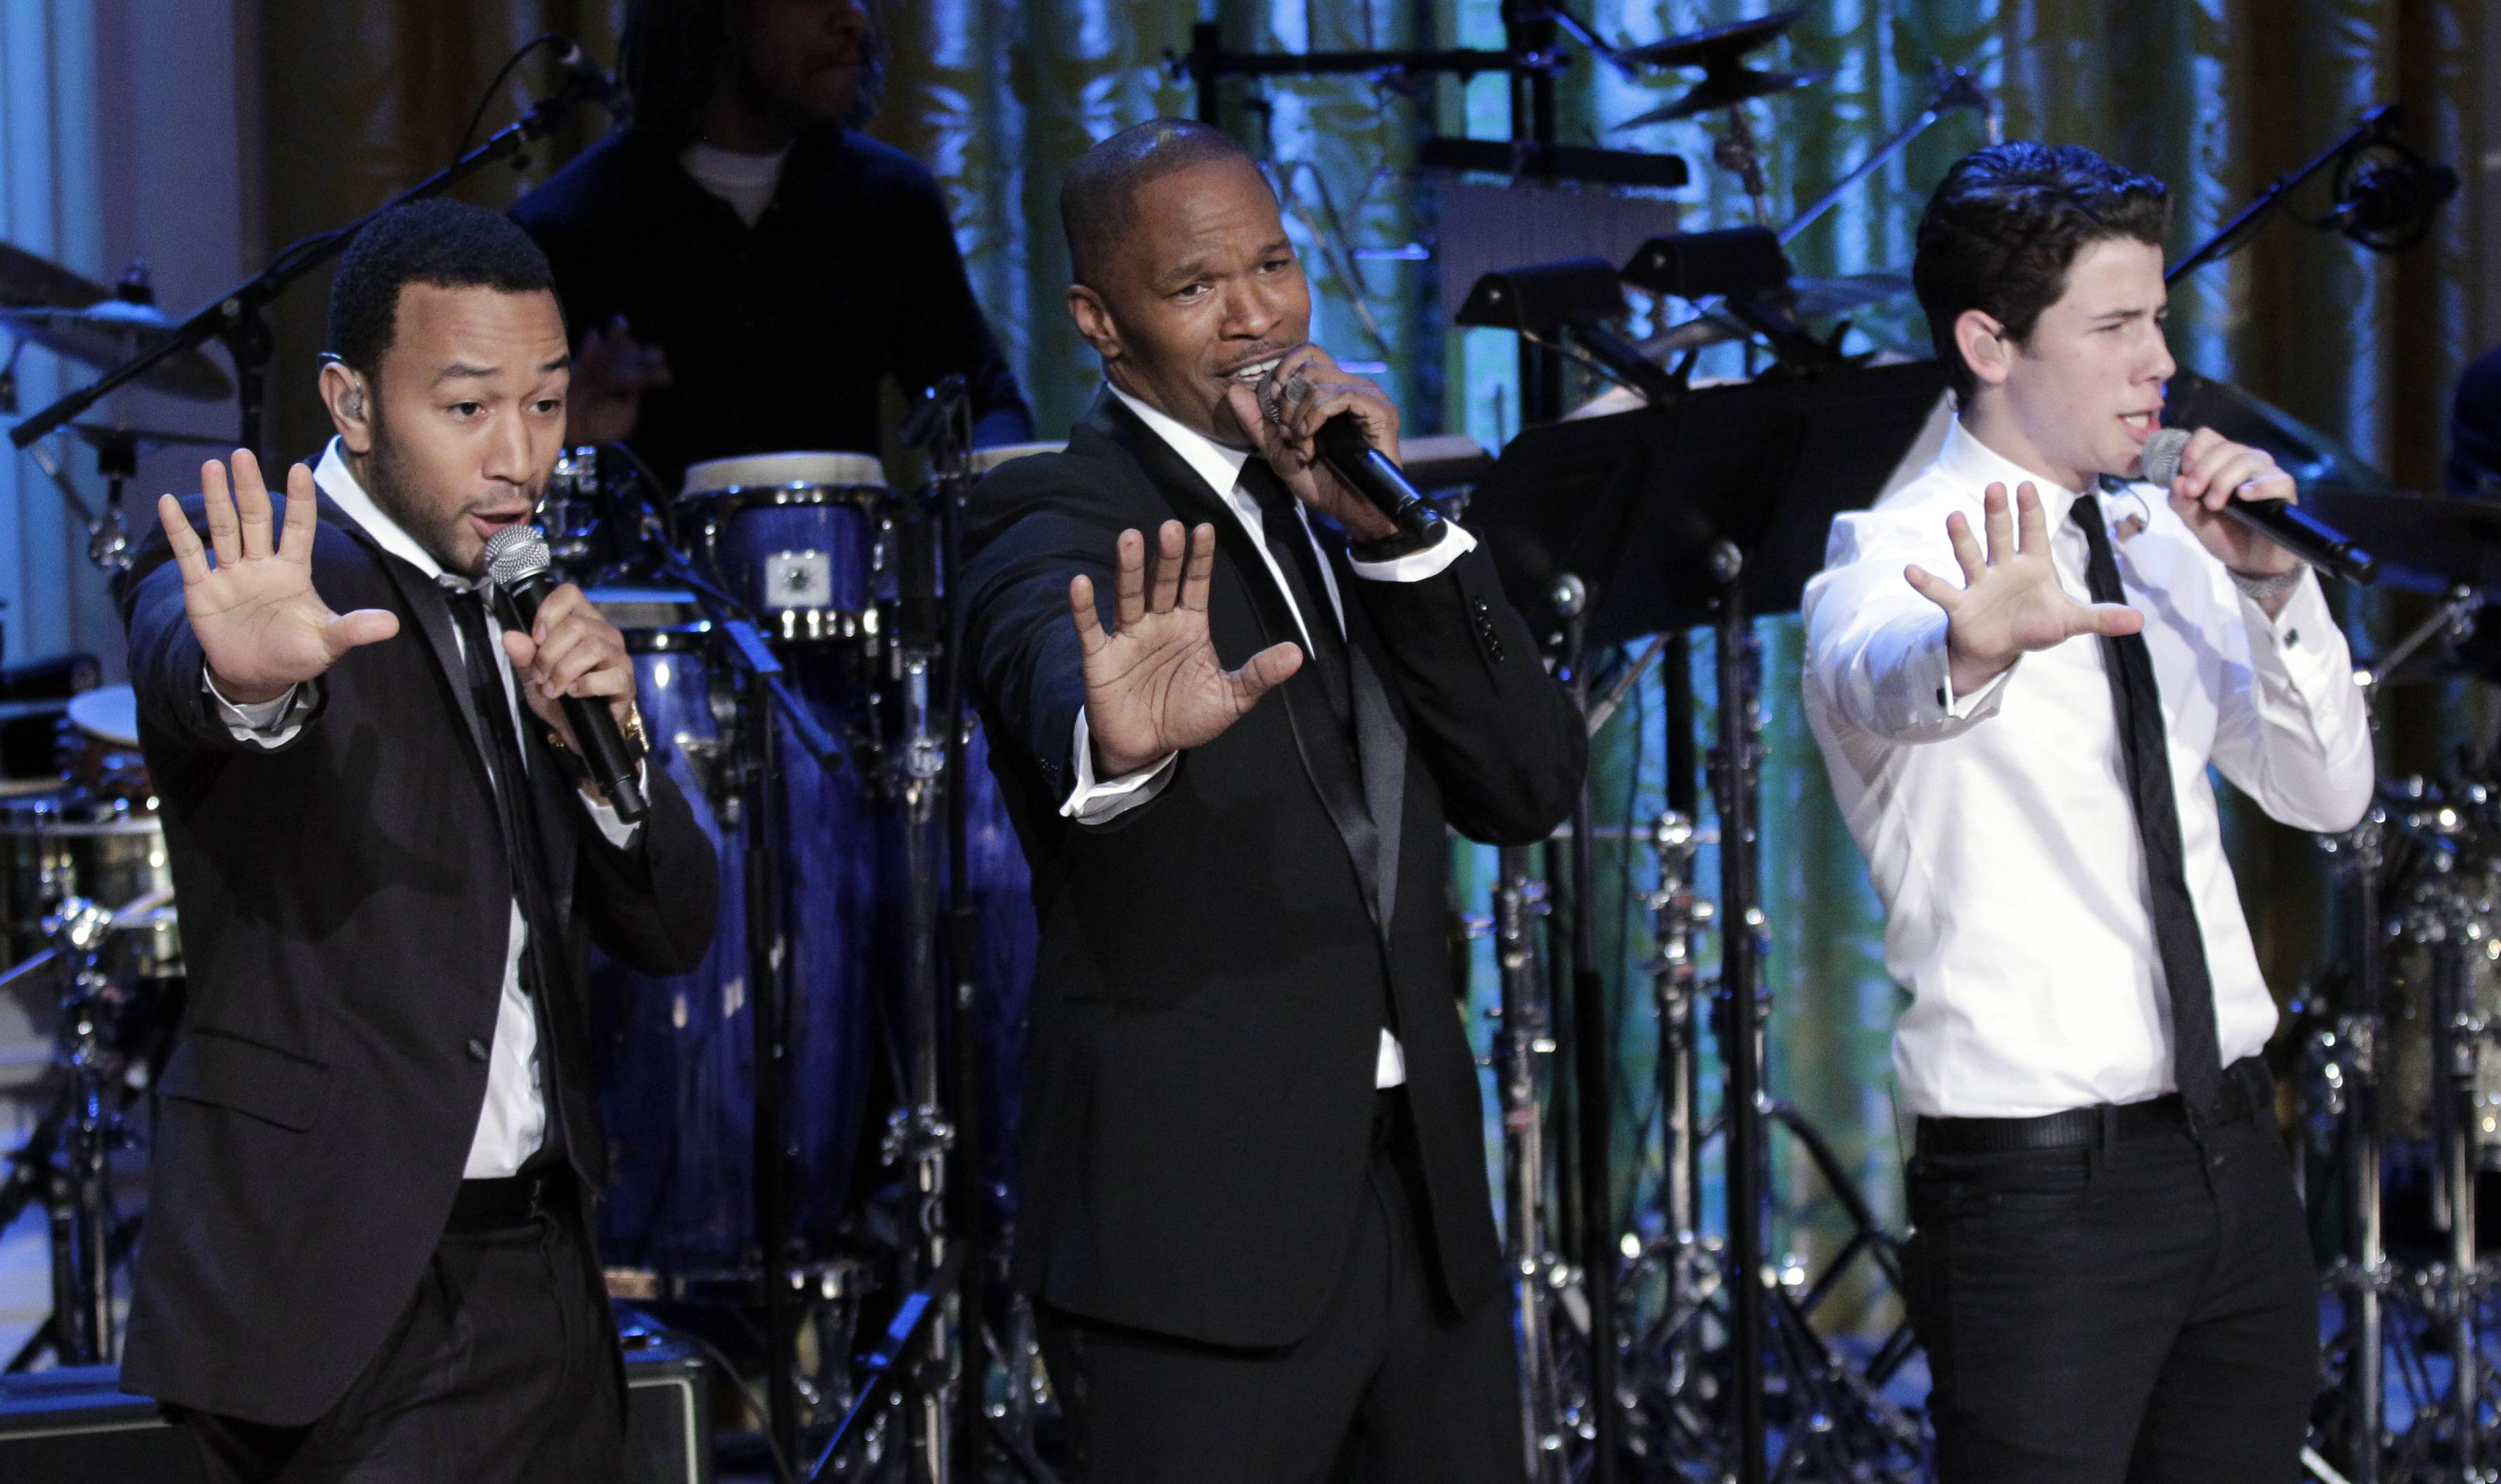 From left, singers John Legend, Jamie Foxx, and Nick Jonas, perform on stage during the White House Music Series saluting Motown in the East Room of the White House in Washington, Thursday.